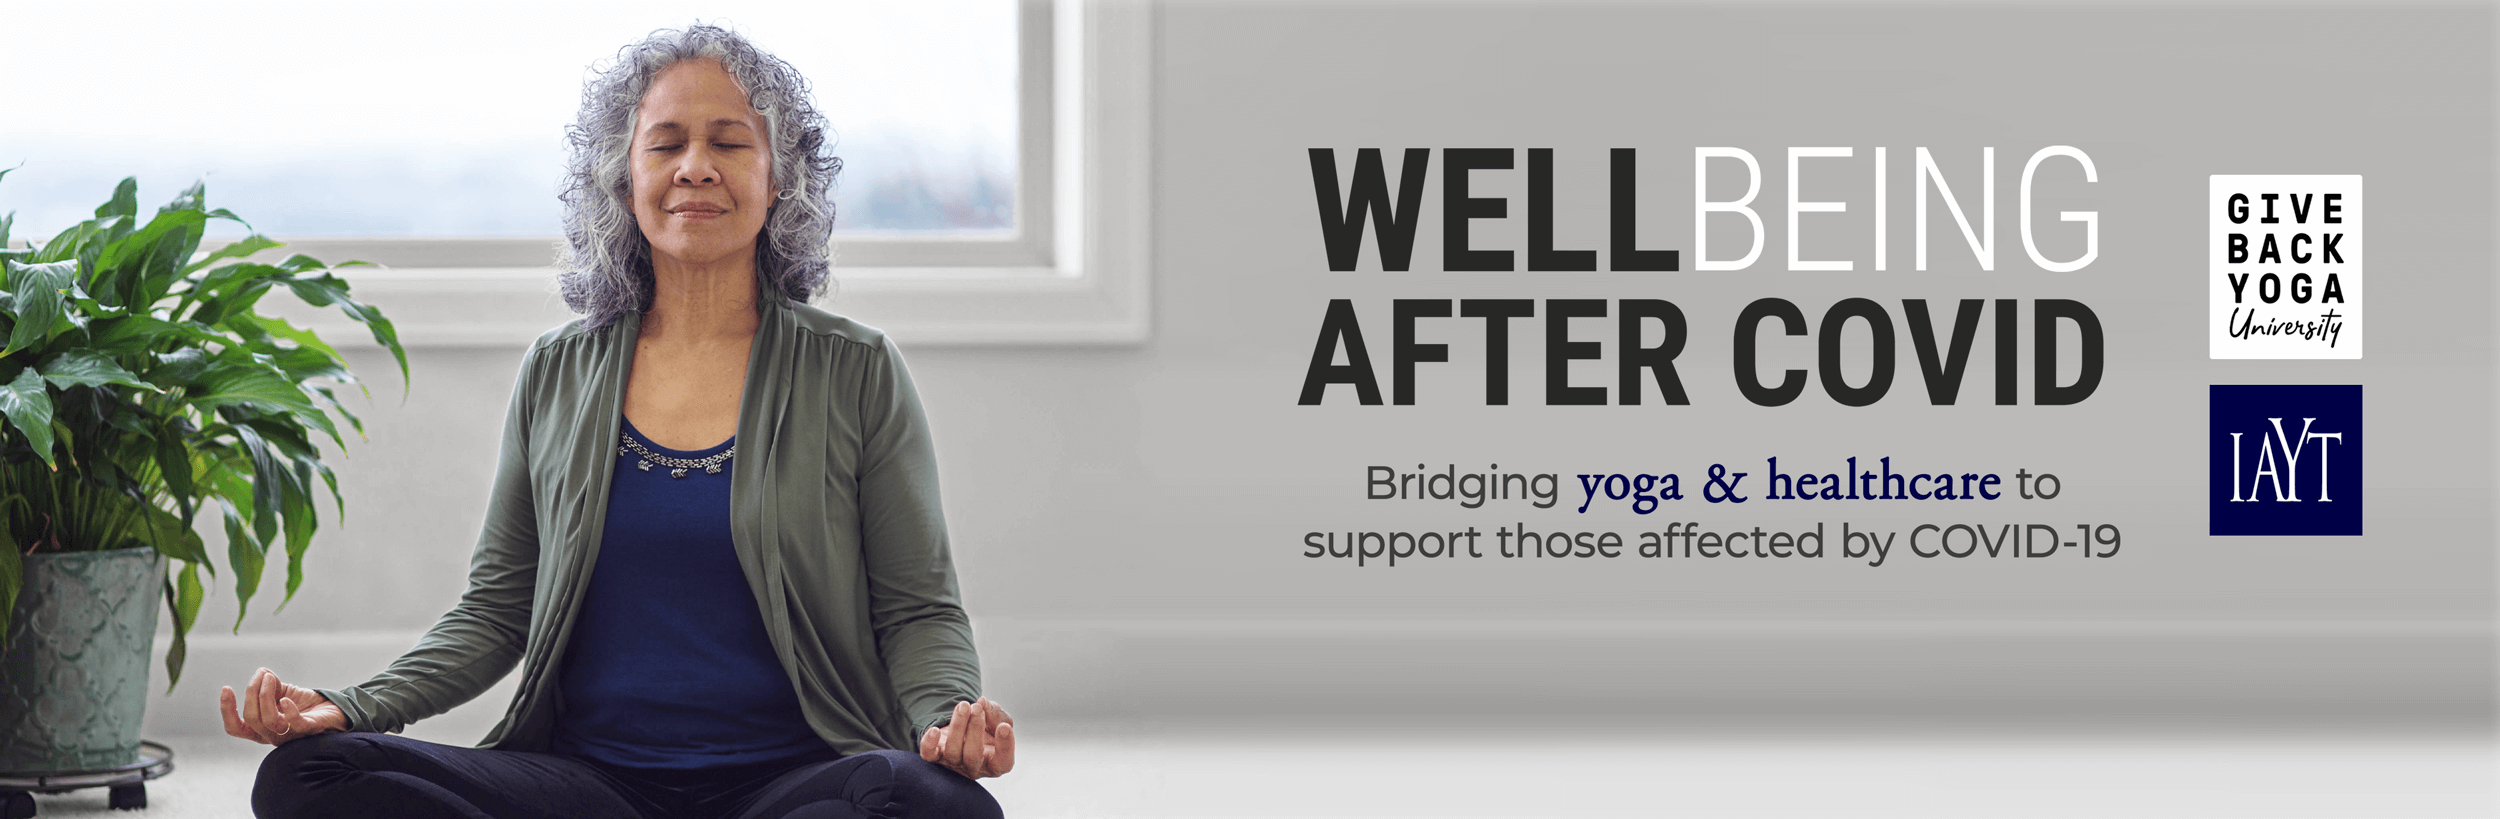 Well-Being After COVID: Bridging yoga & healthcare to support those affected by COVID-19